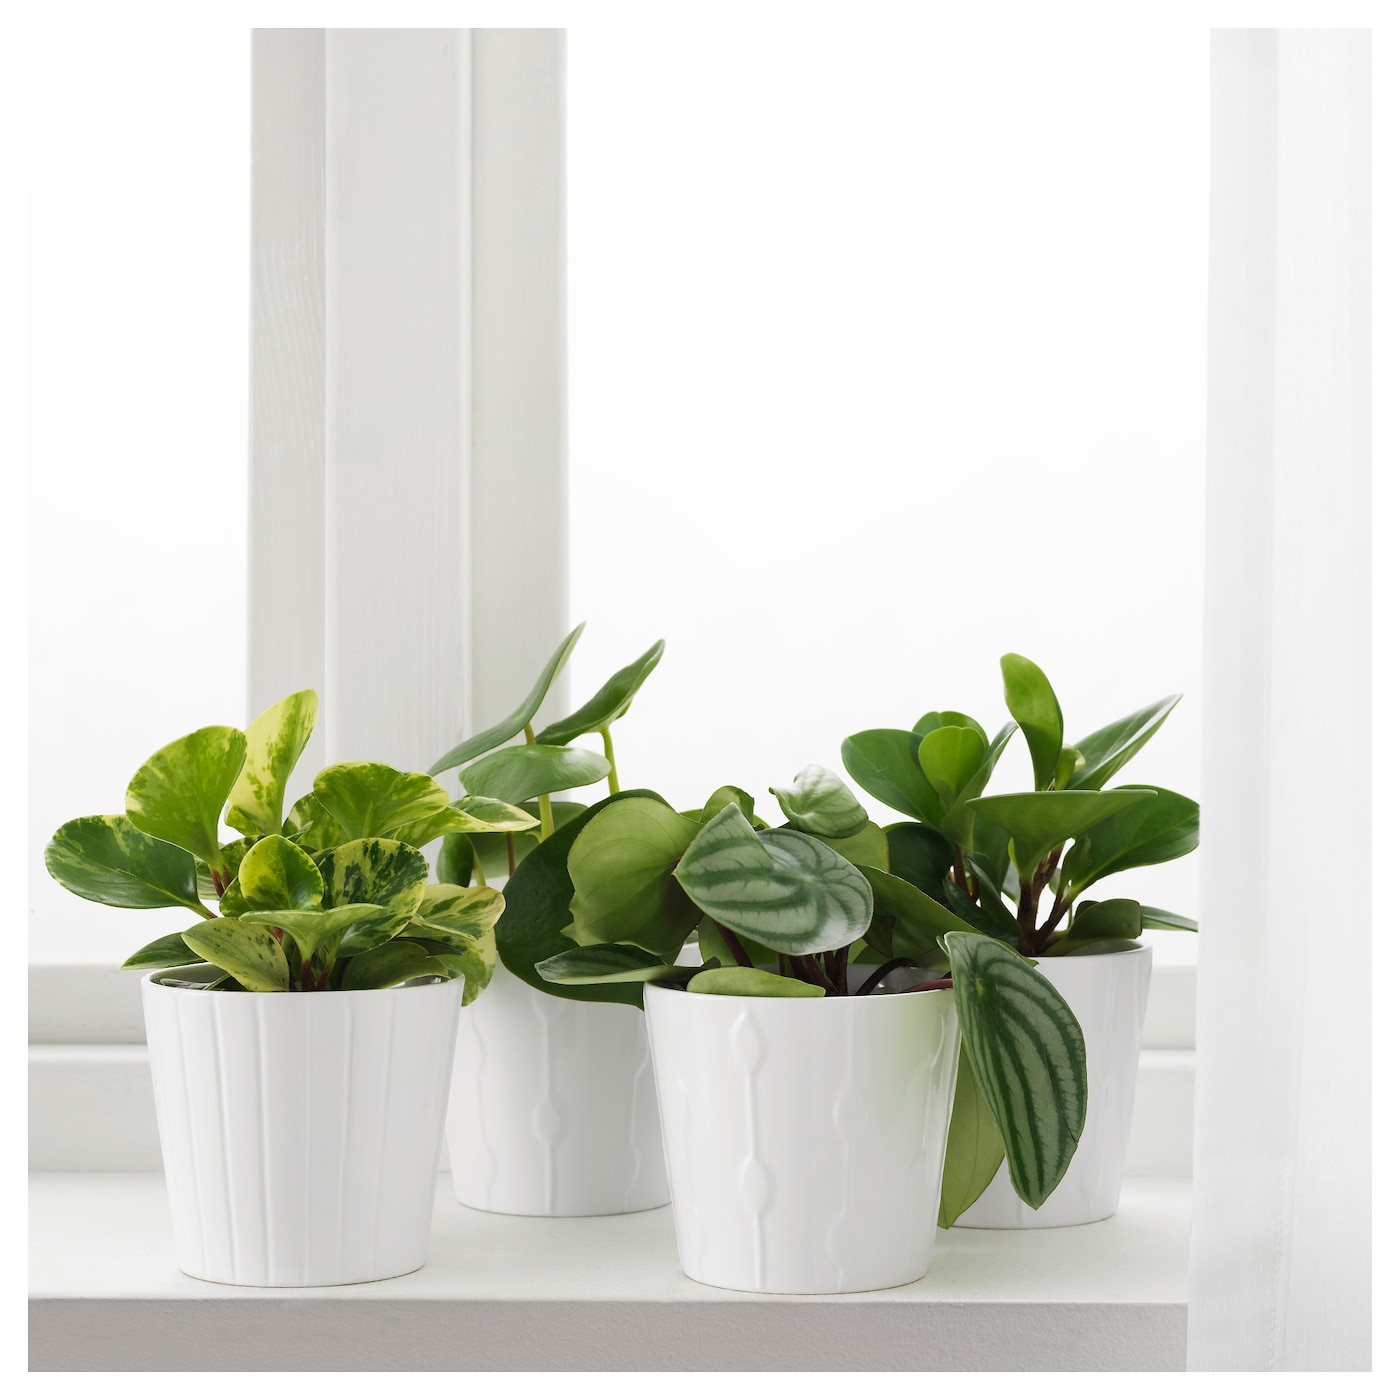 IKEA PEPEROMIA potted plant